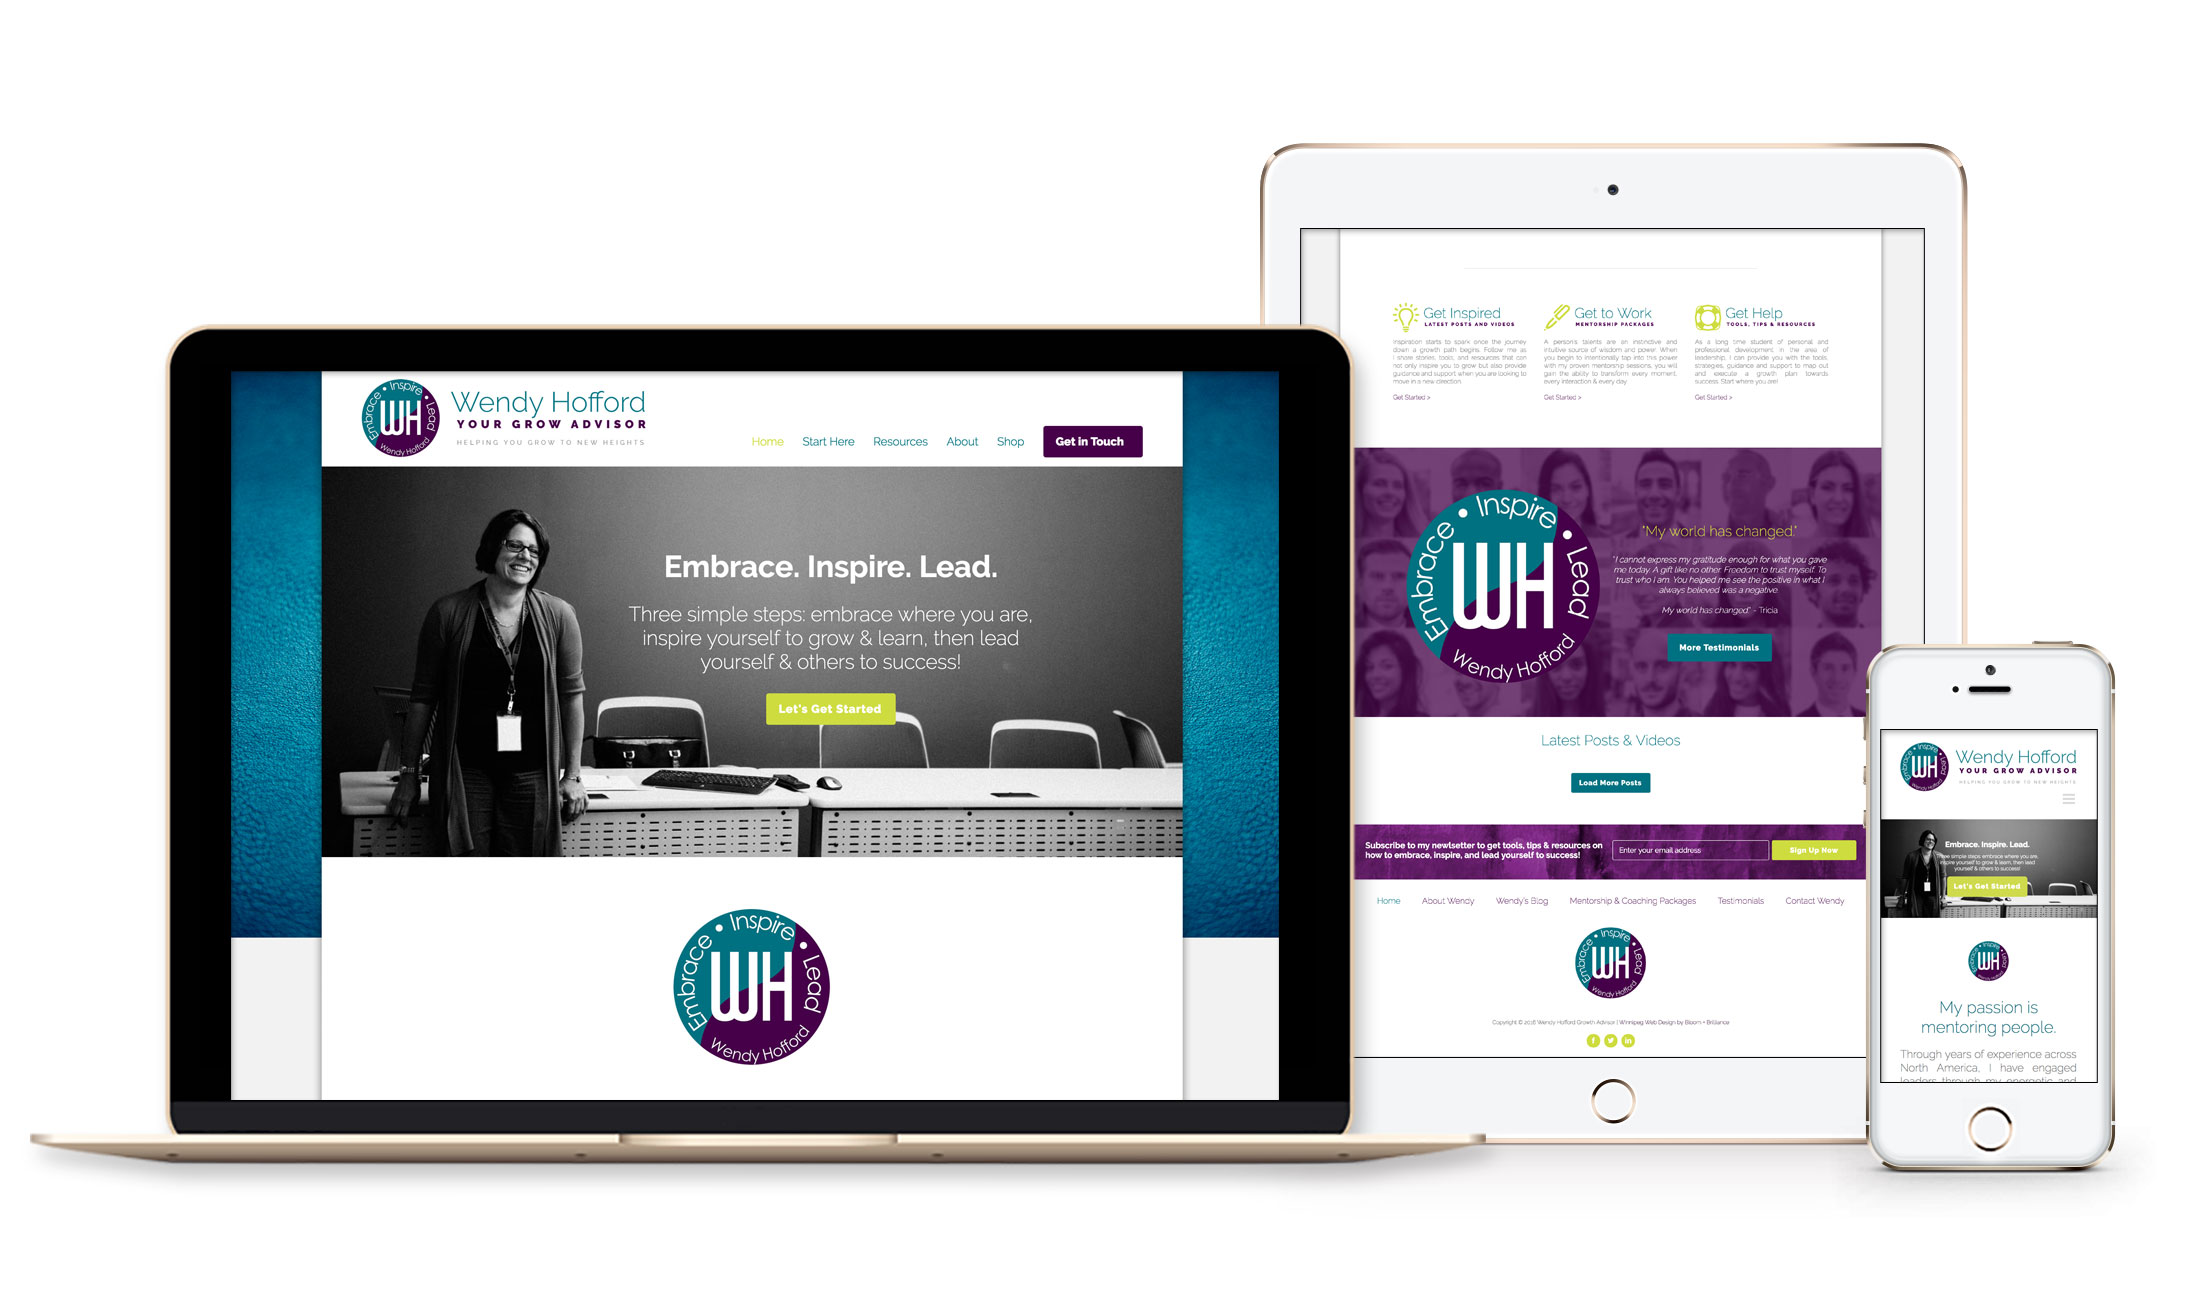 Winnipeg Web Design and Branding, Responsive Website Design for Wendy Hofford in Winnipeg, Manitoba